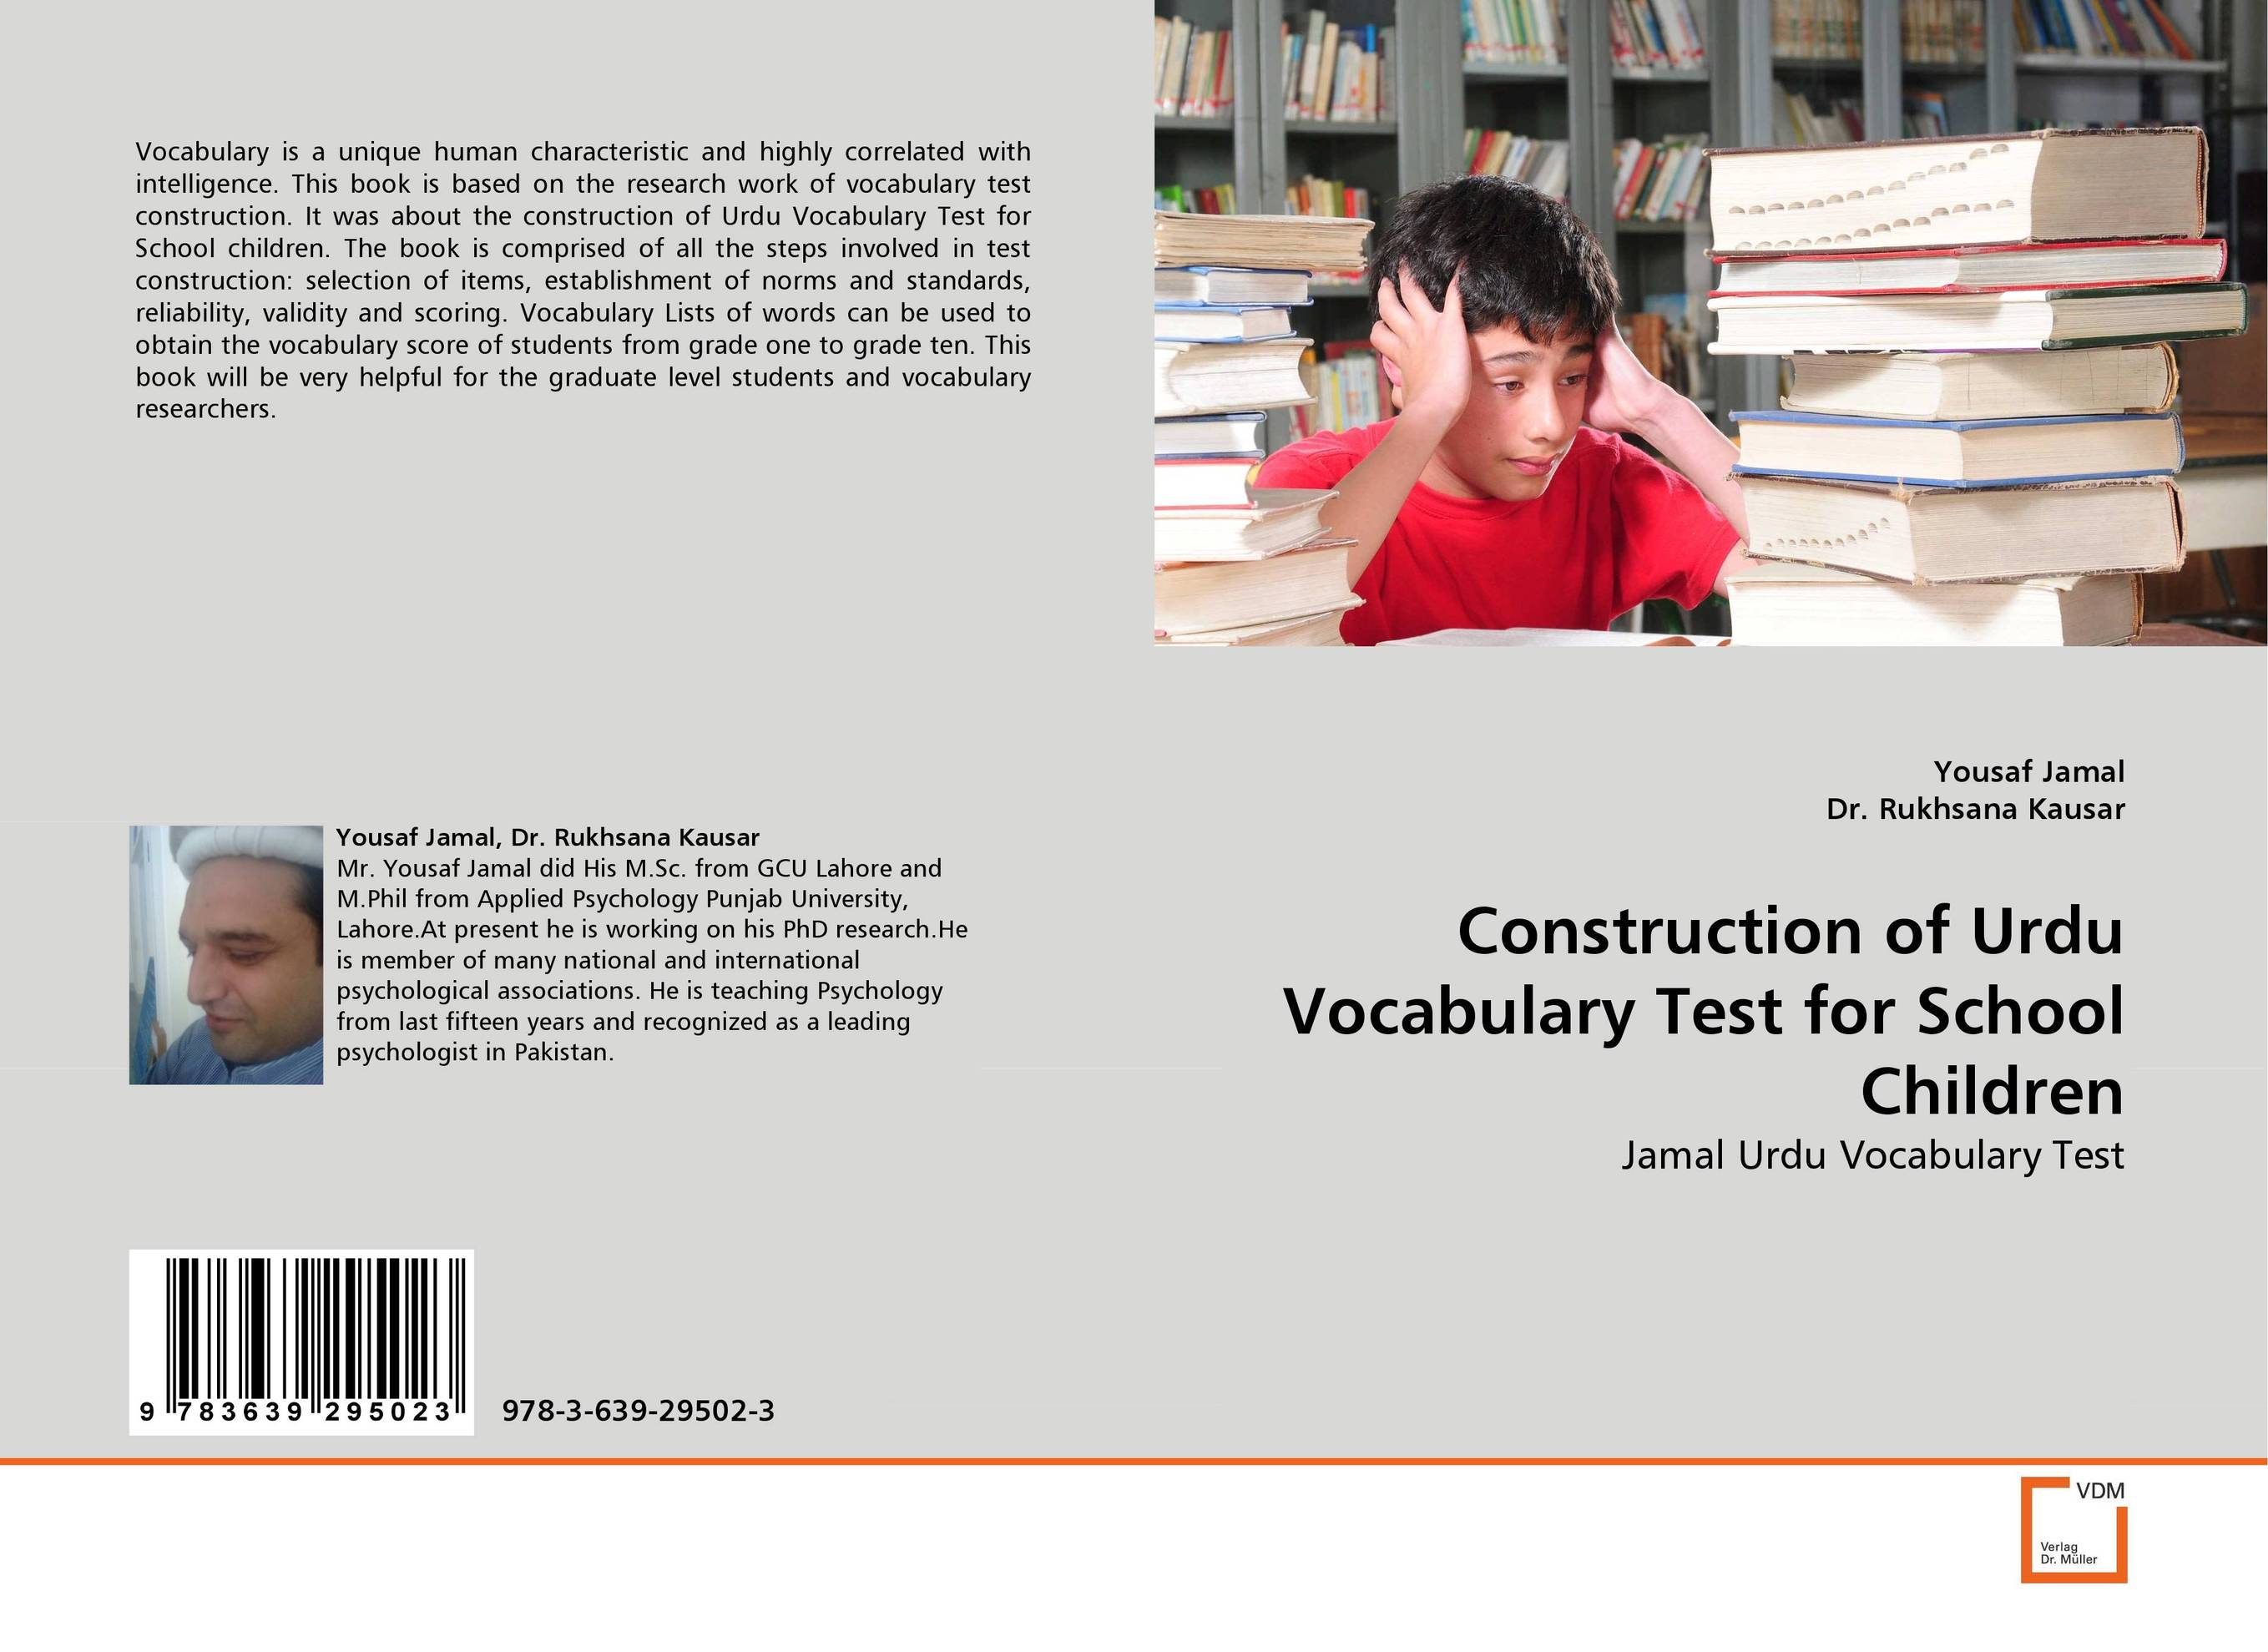 Construction of Urdu Vocabulary Test for School Children sana shahzadi beenish fatima and muhammad kamran urdu t9 and word prediction messaging system for android